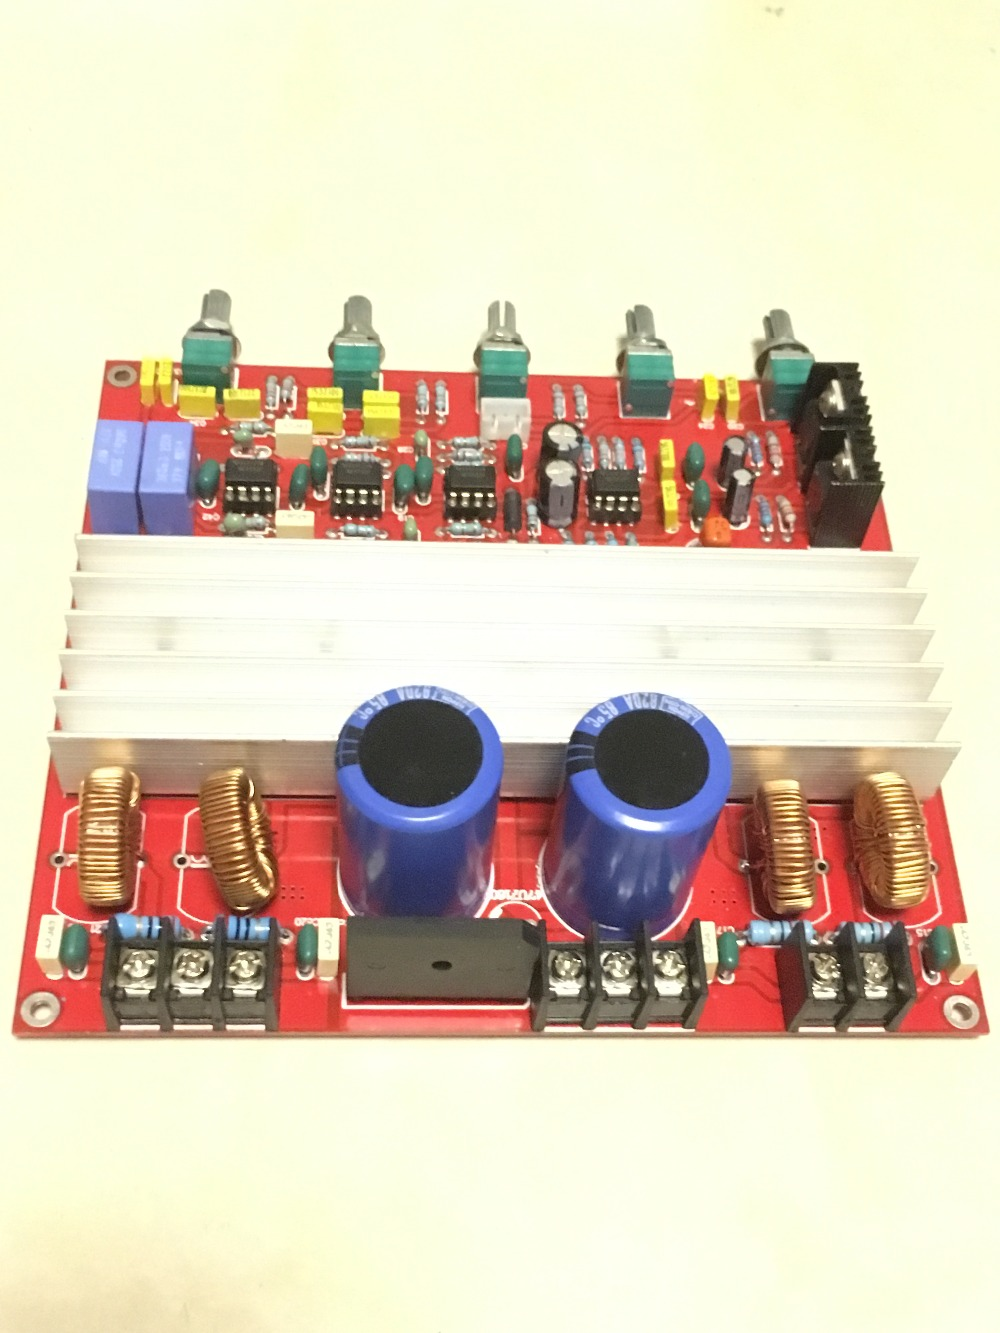 Free Shipping Tda8950 21 Digital Amplifier Board With Protection 2 170w Class D Schematic Diagram 2170w 250w High Power Bass Sound In From Consumer